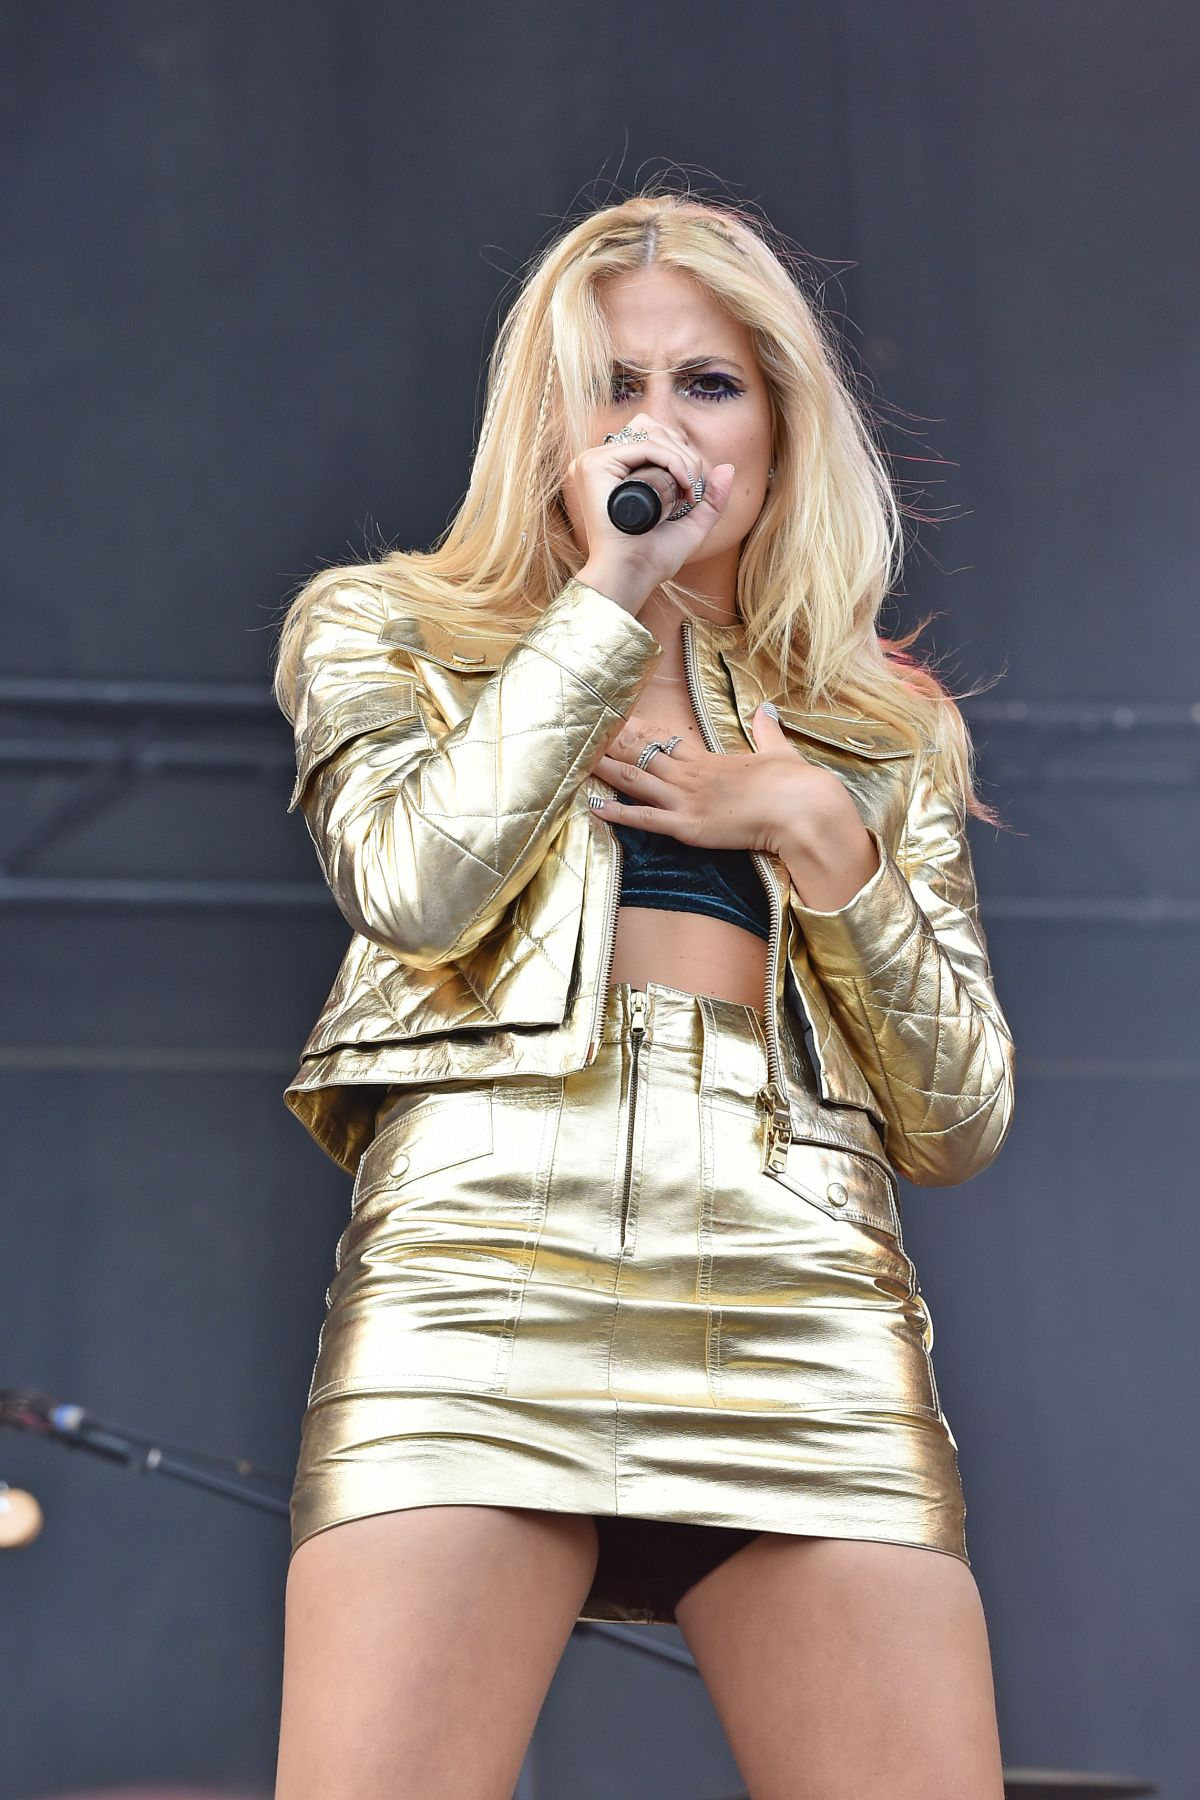 Naughty pixie lott sexual tube